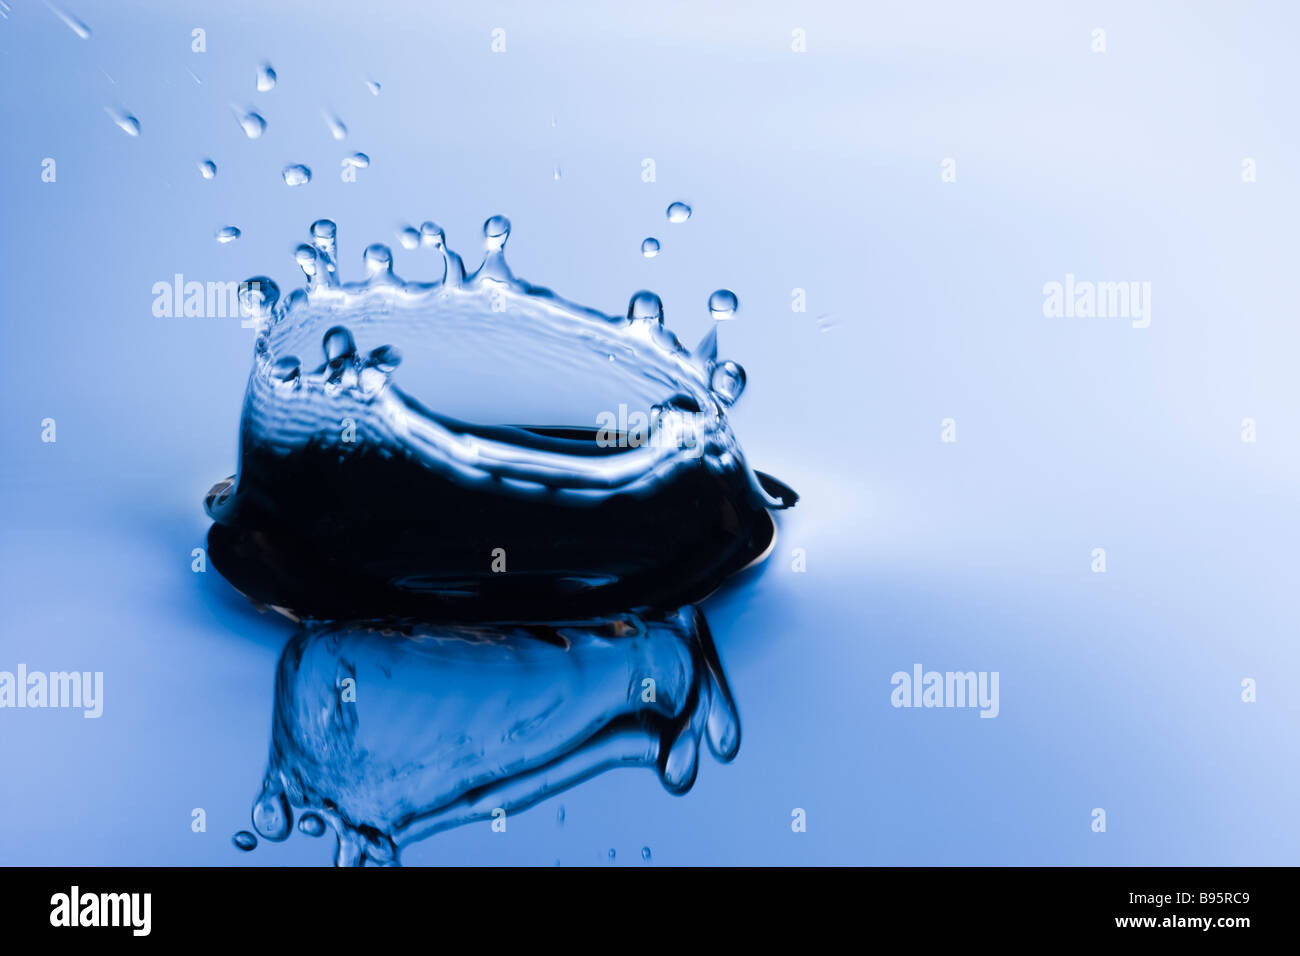 Splash in water - Stock Image